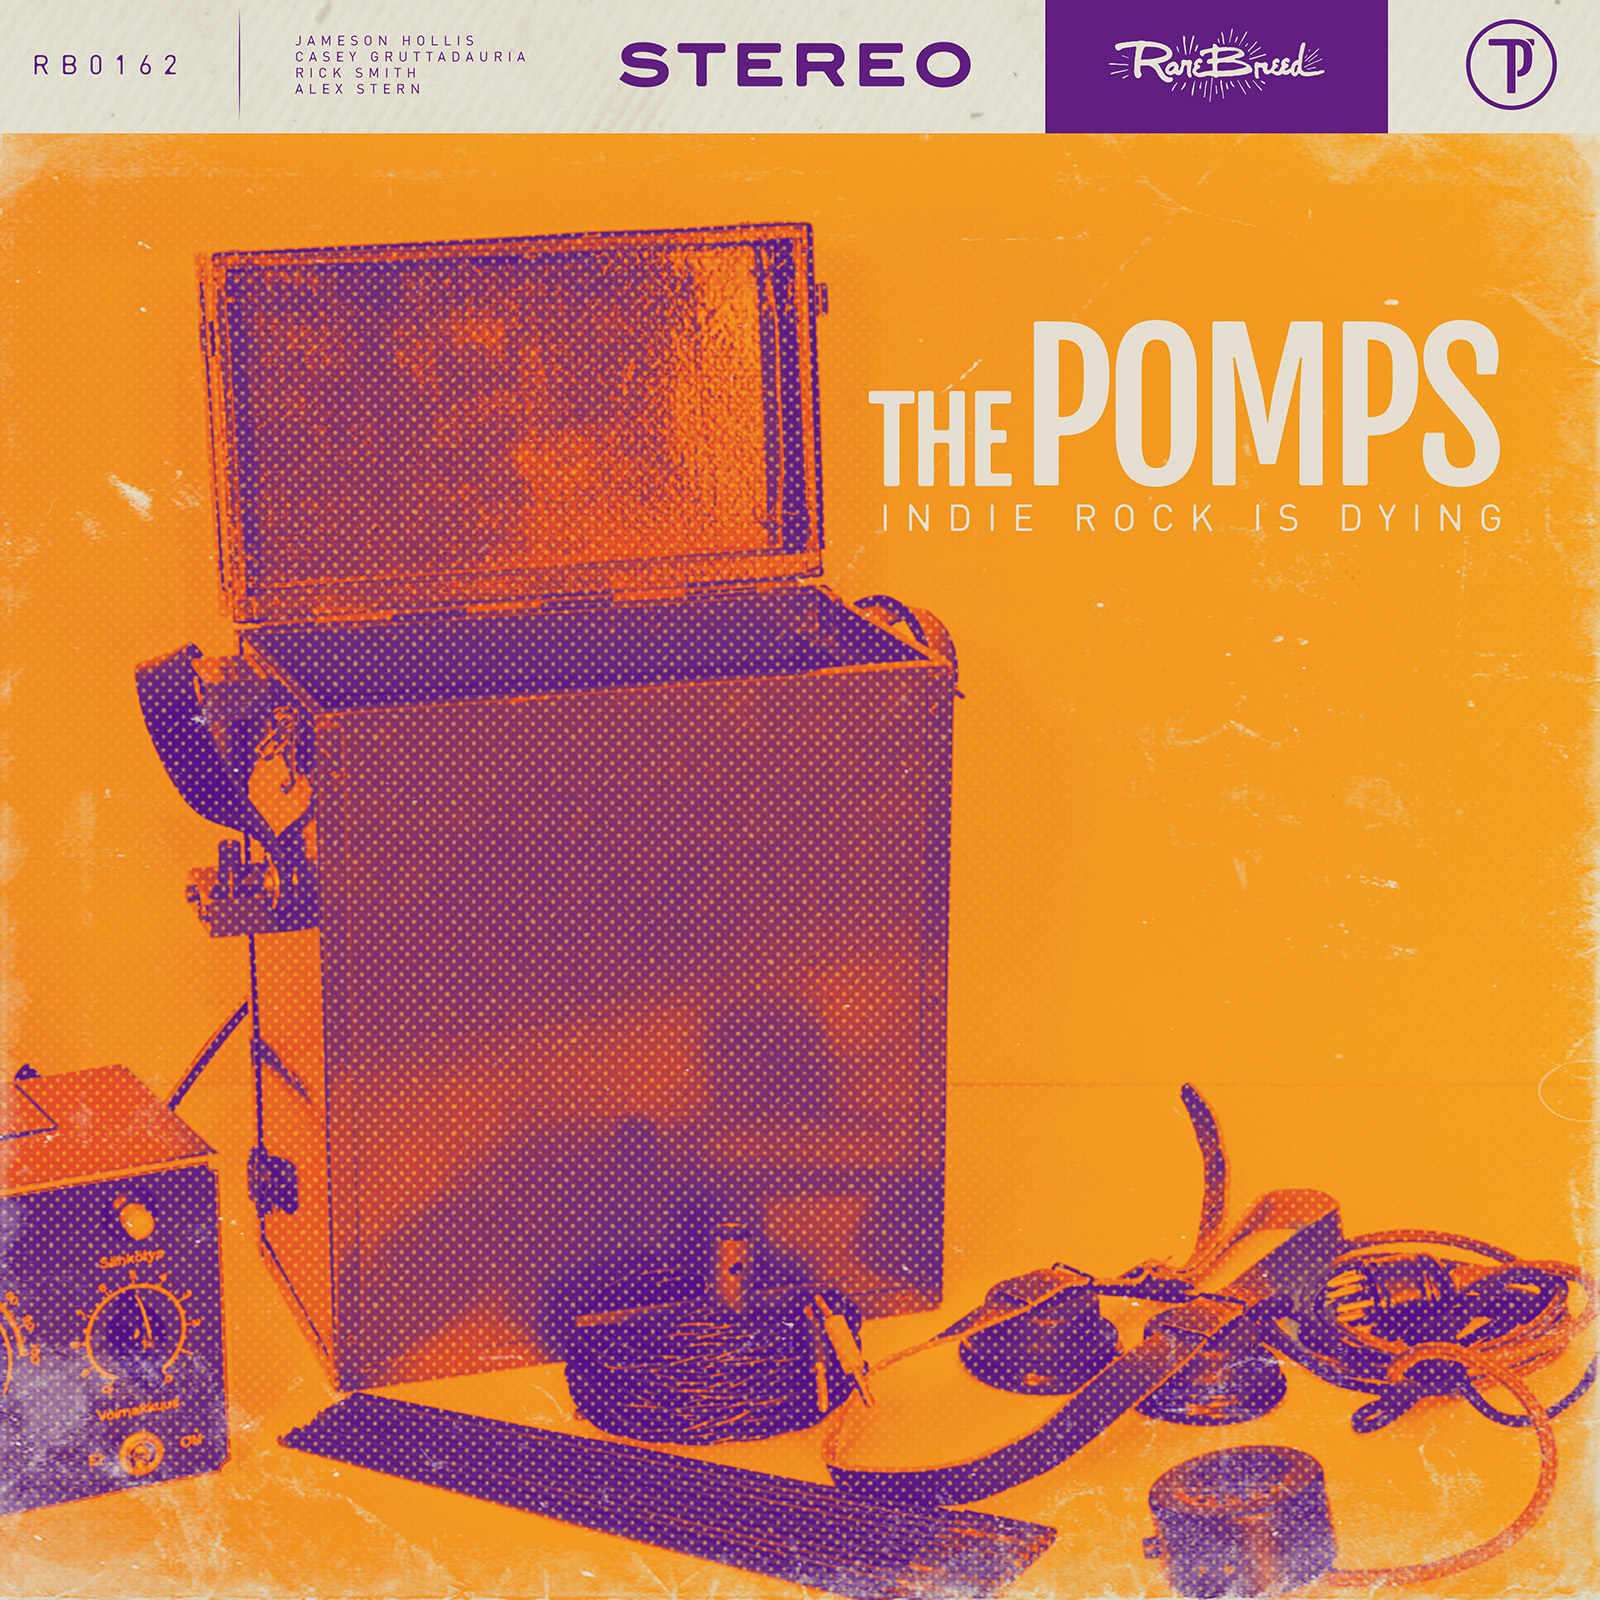 The Pomps - Indie Rock is Dying